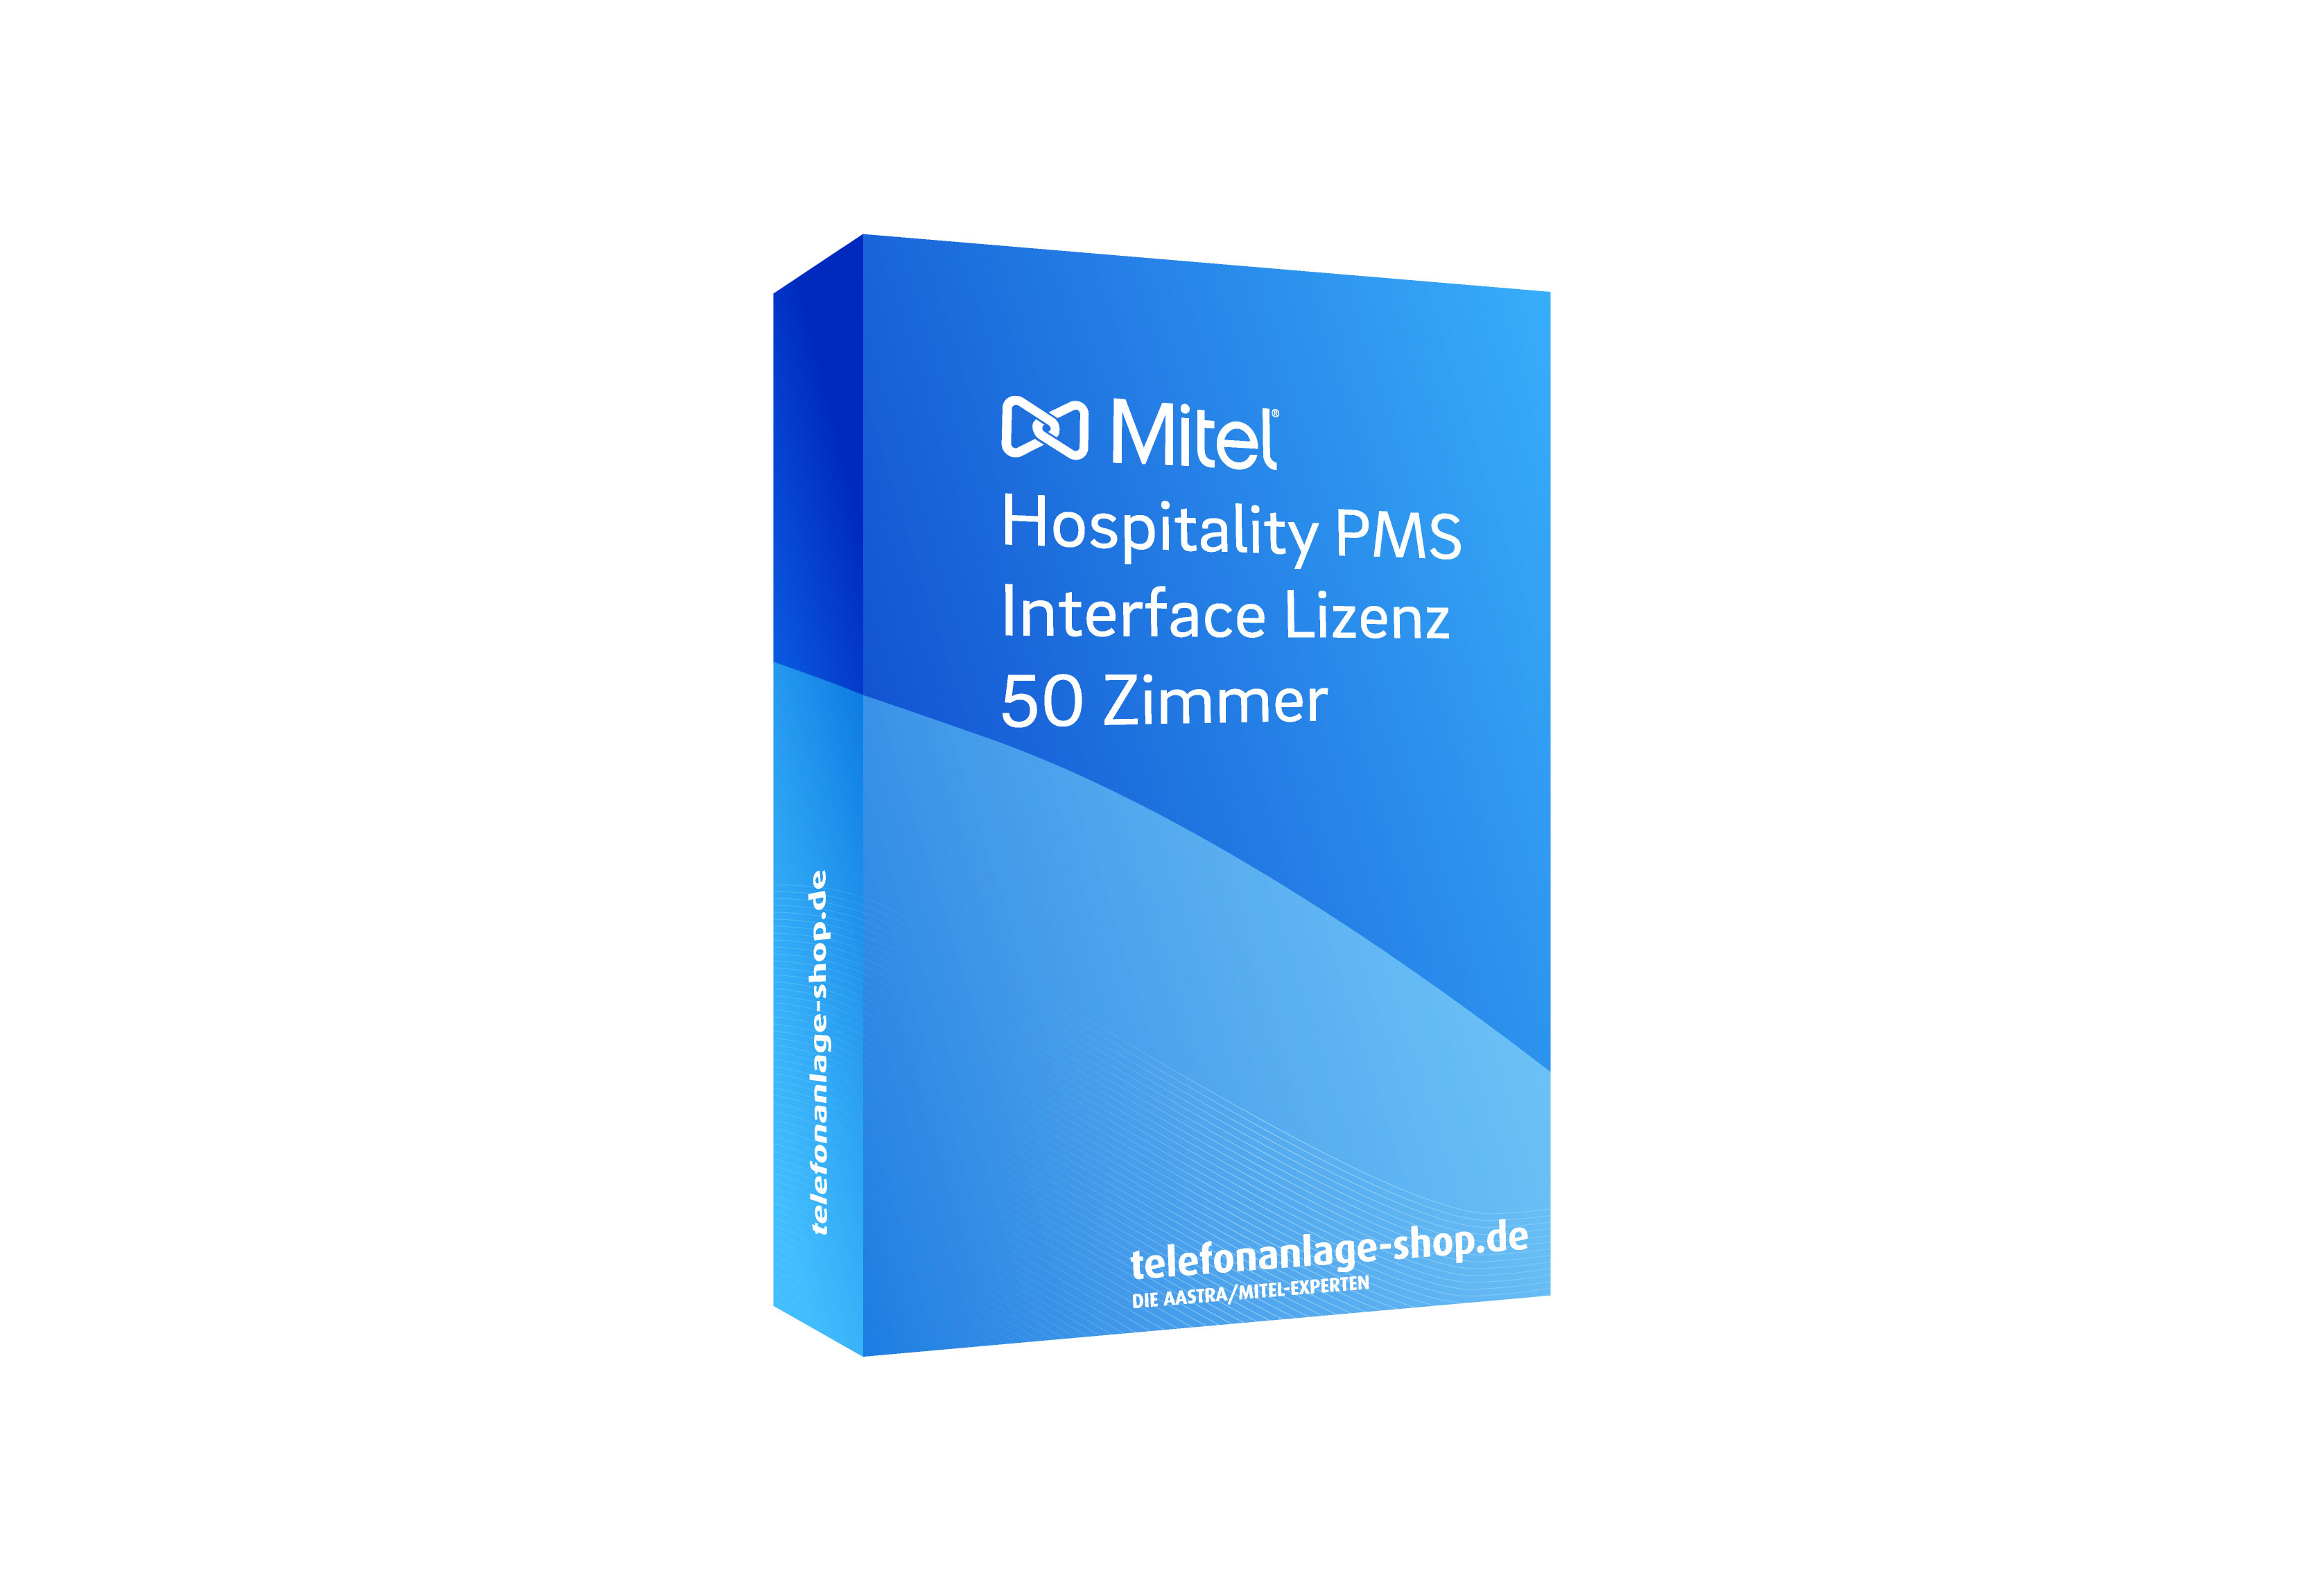 Vollansicht - Aastra Lizenz Hospitality PMS Interface 50